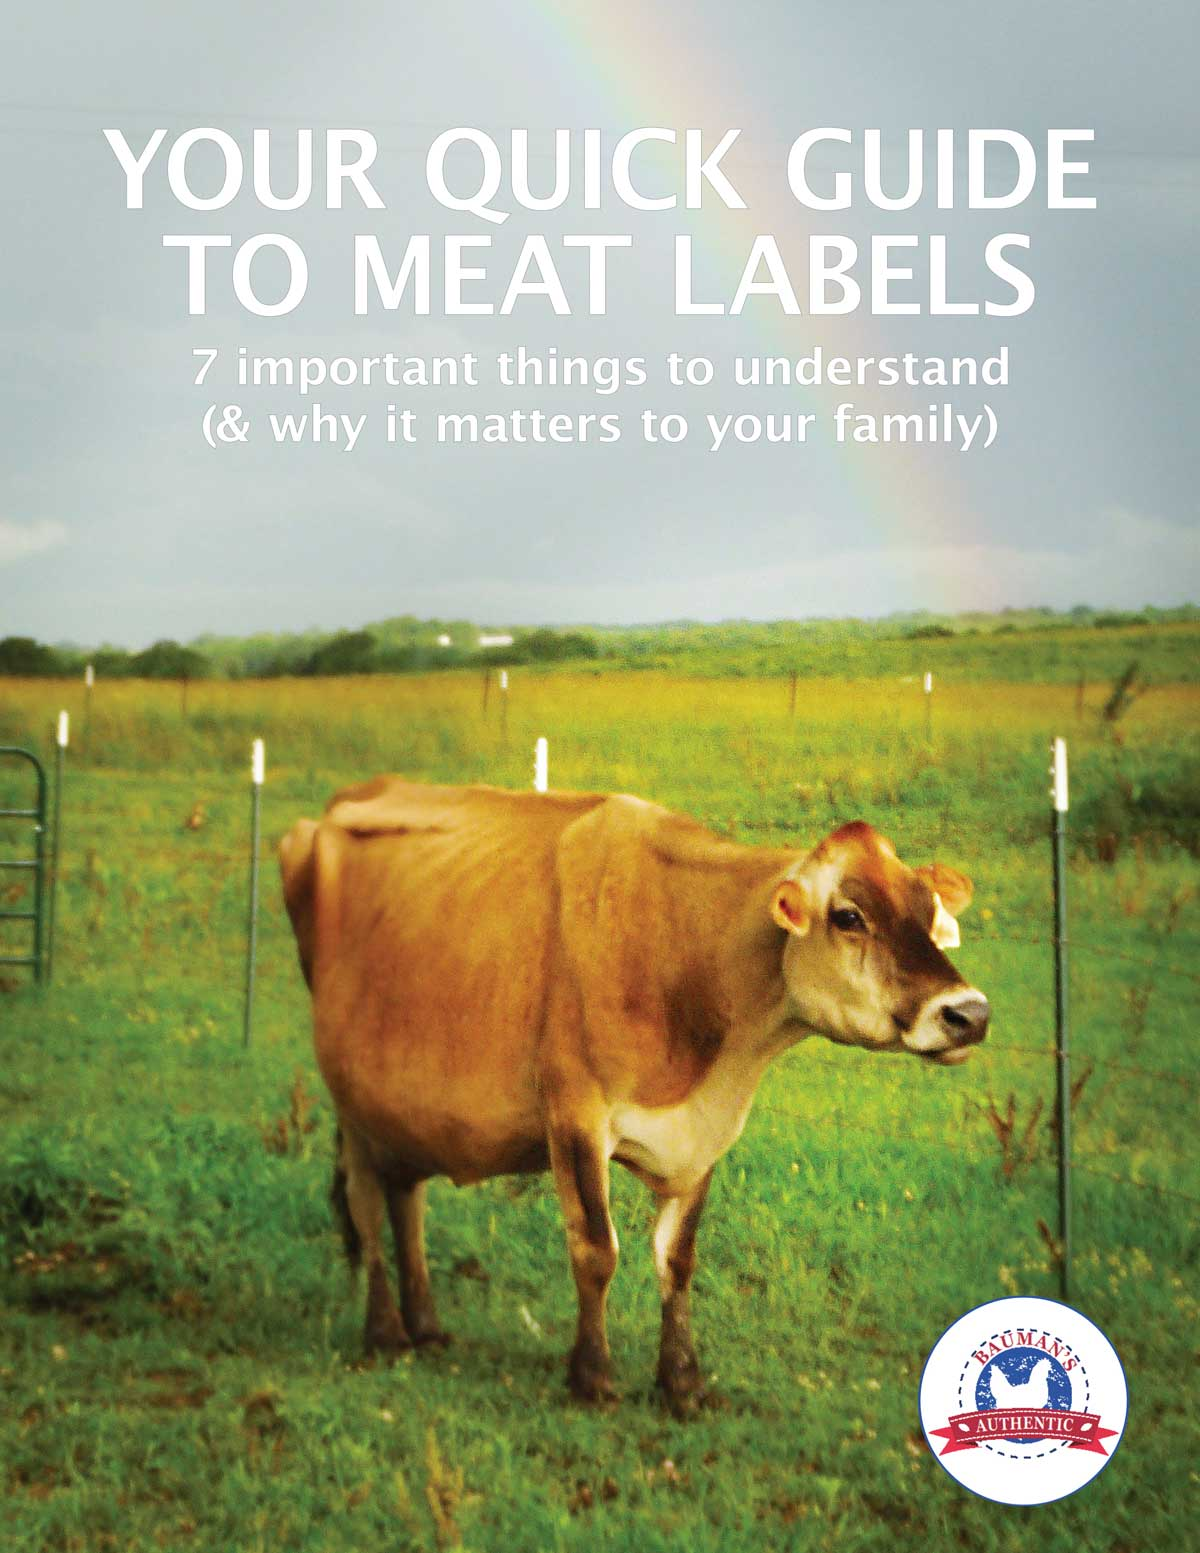 YOUR QUICK GUIDE TO MEAT LABELS